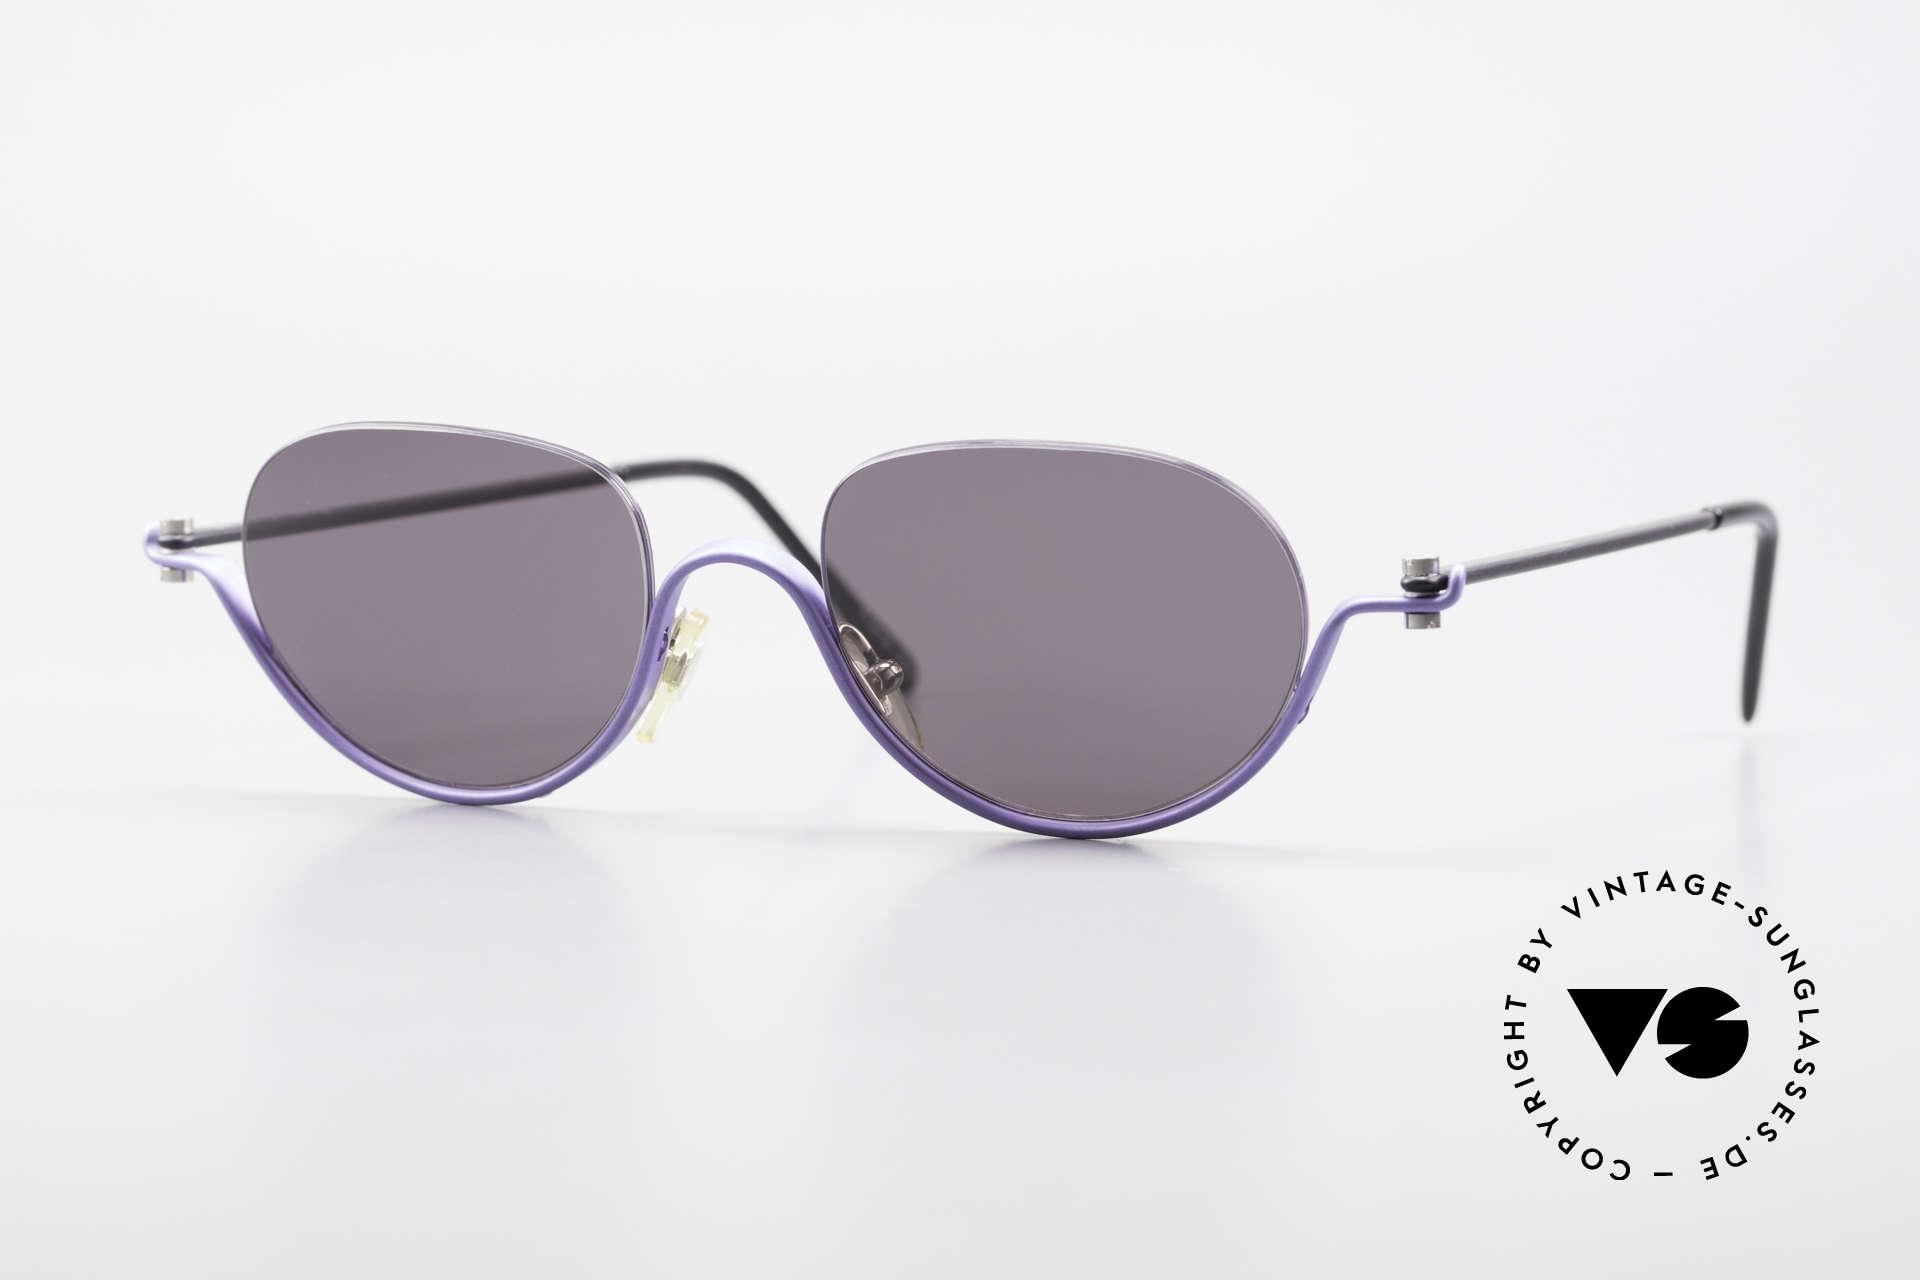 ProDesign No8 Gail Spence Design Eyeglasses, Pro Design N°EIGHT - Optic Studio Denmark Shades, Made for Women